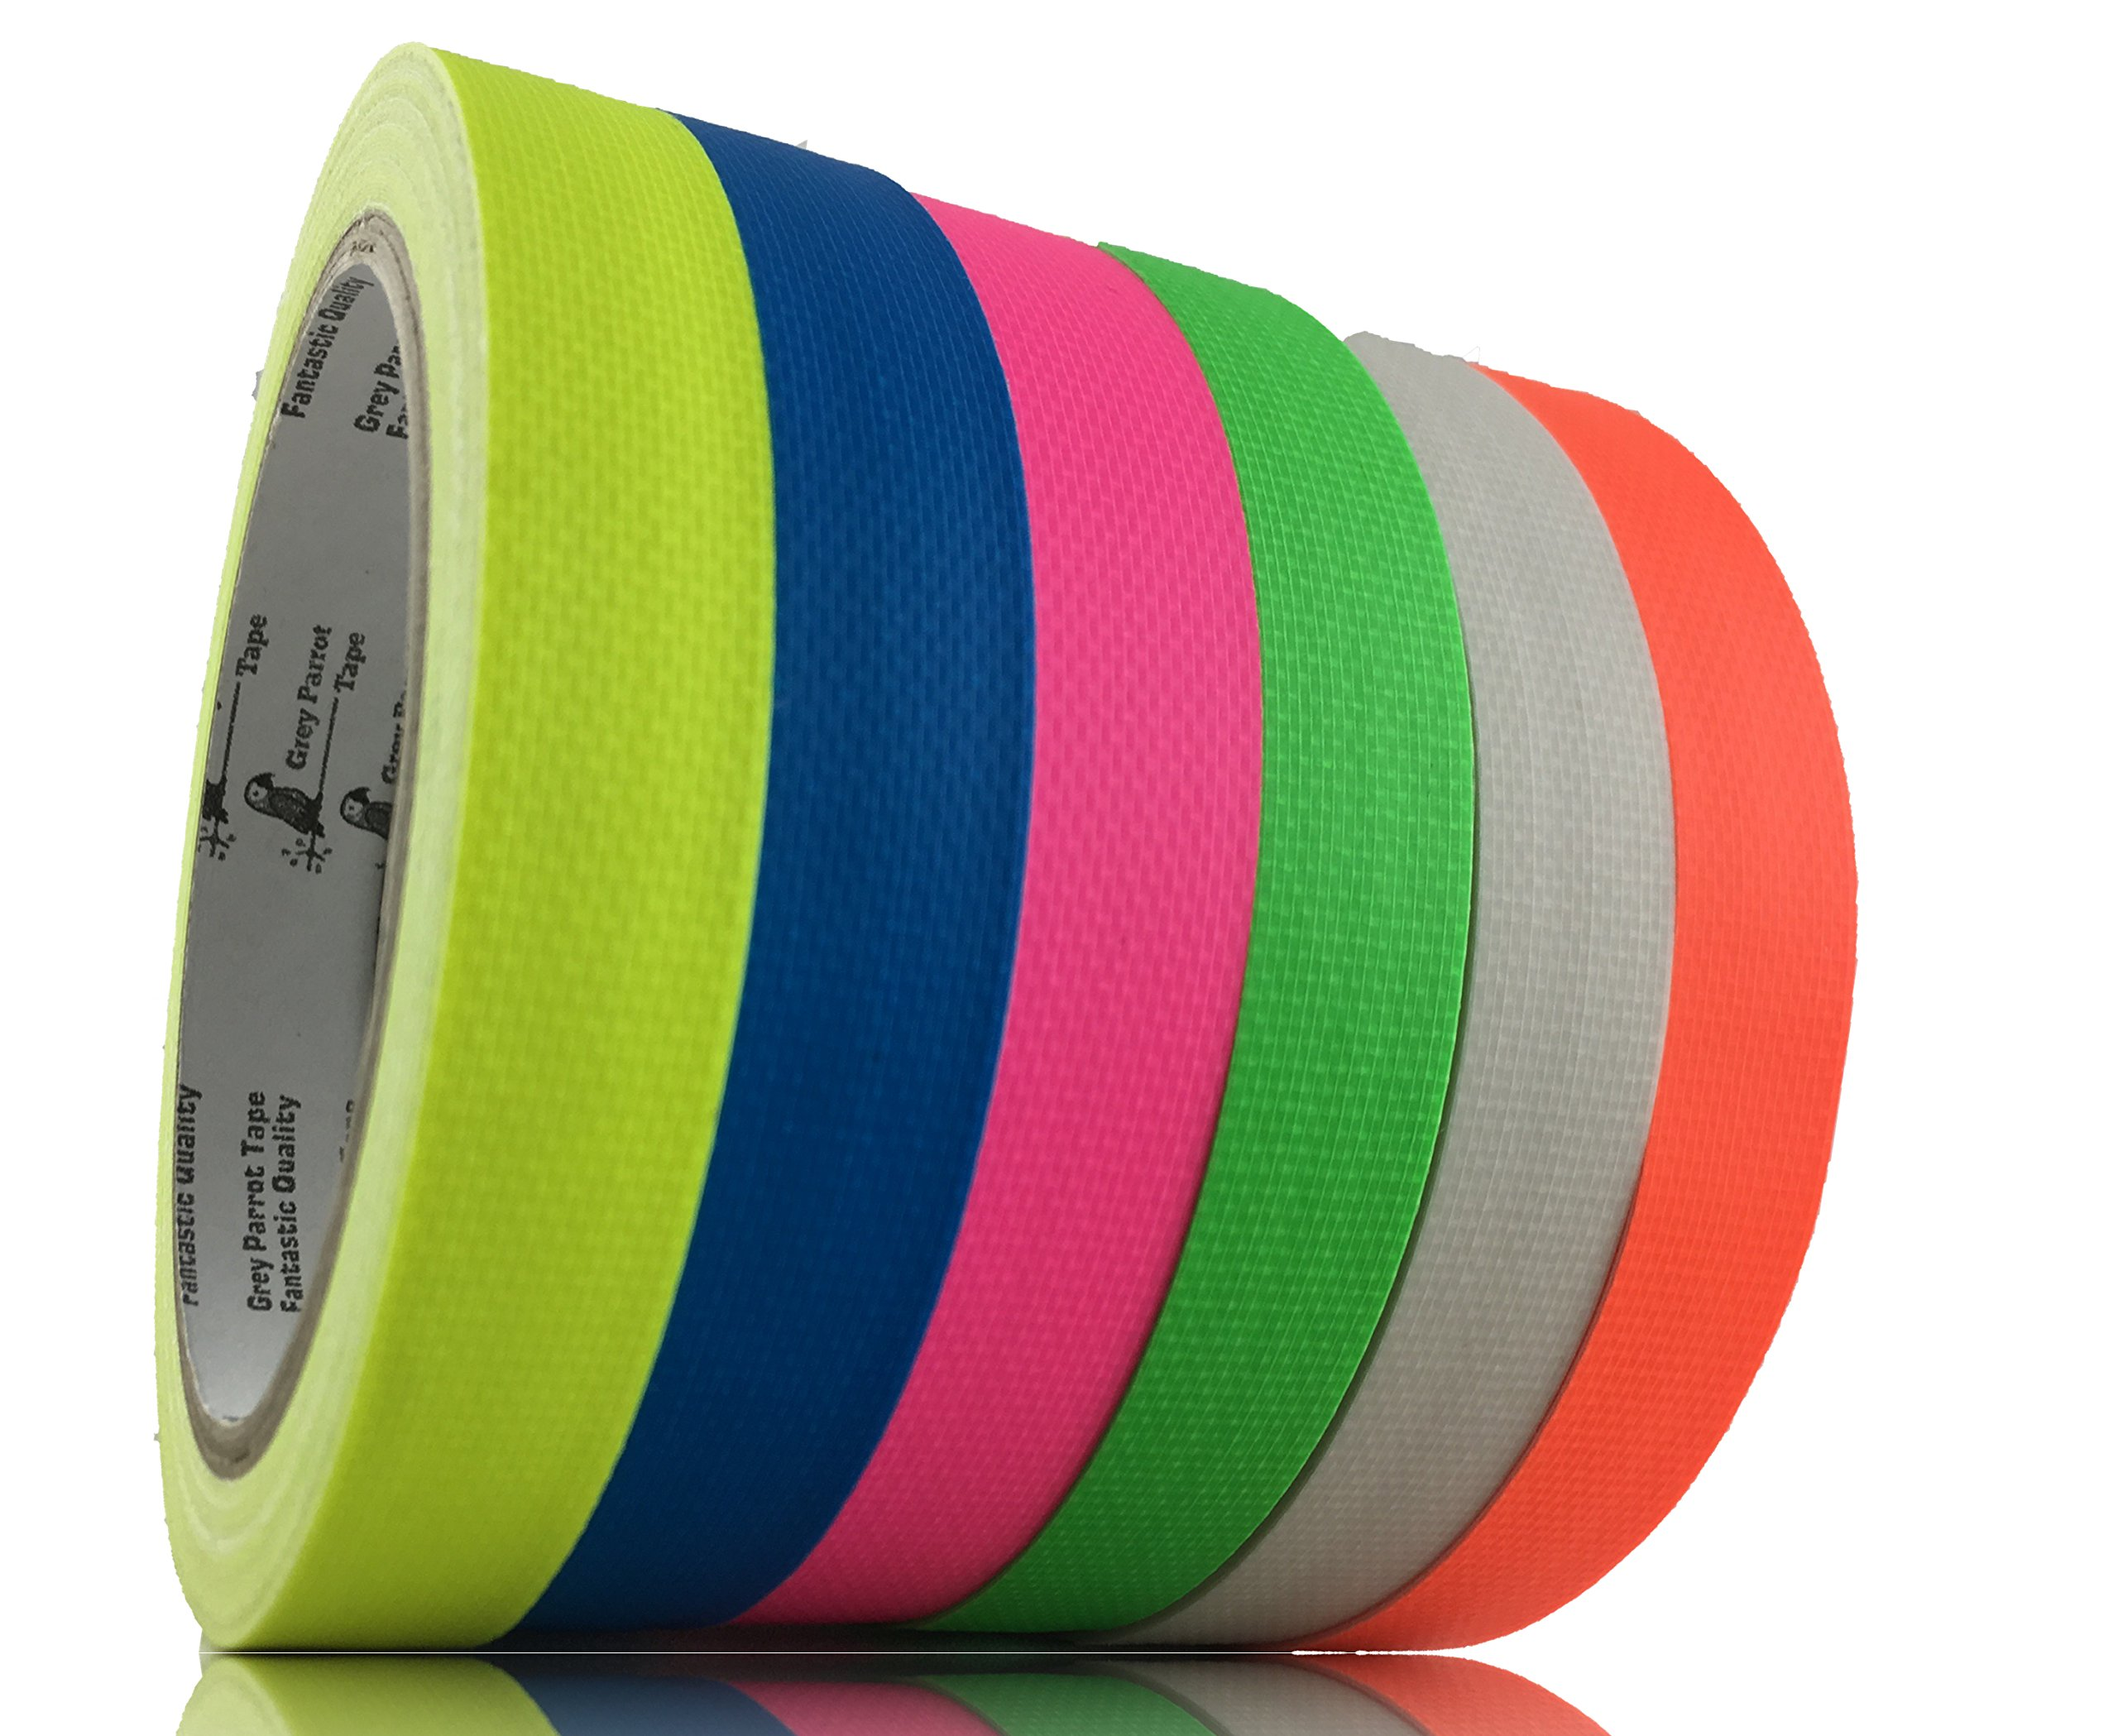 GreyParrot Tape UV Blacklight Reactive, (6 Pack)(1in x 50ft), Fluorescent Cloth Tape, 11.8mil Thickness